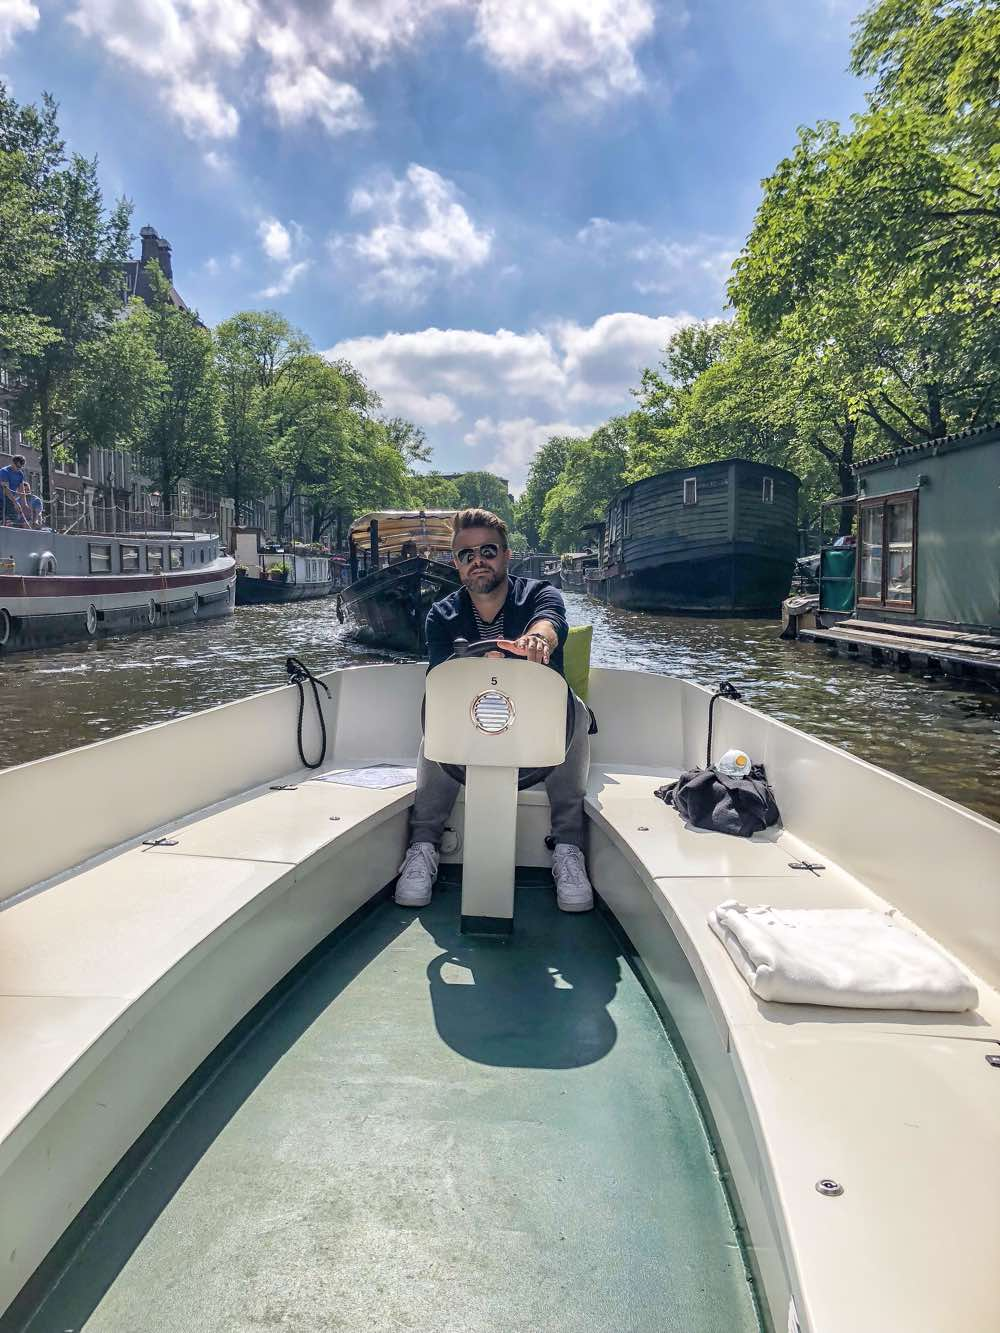 grachten varen in Amsterdam